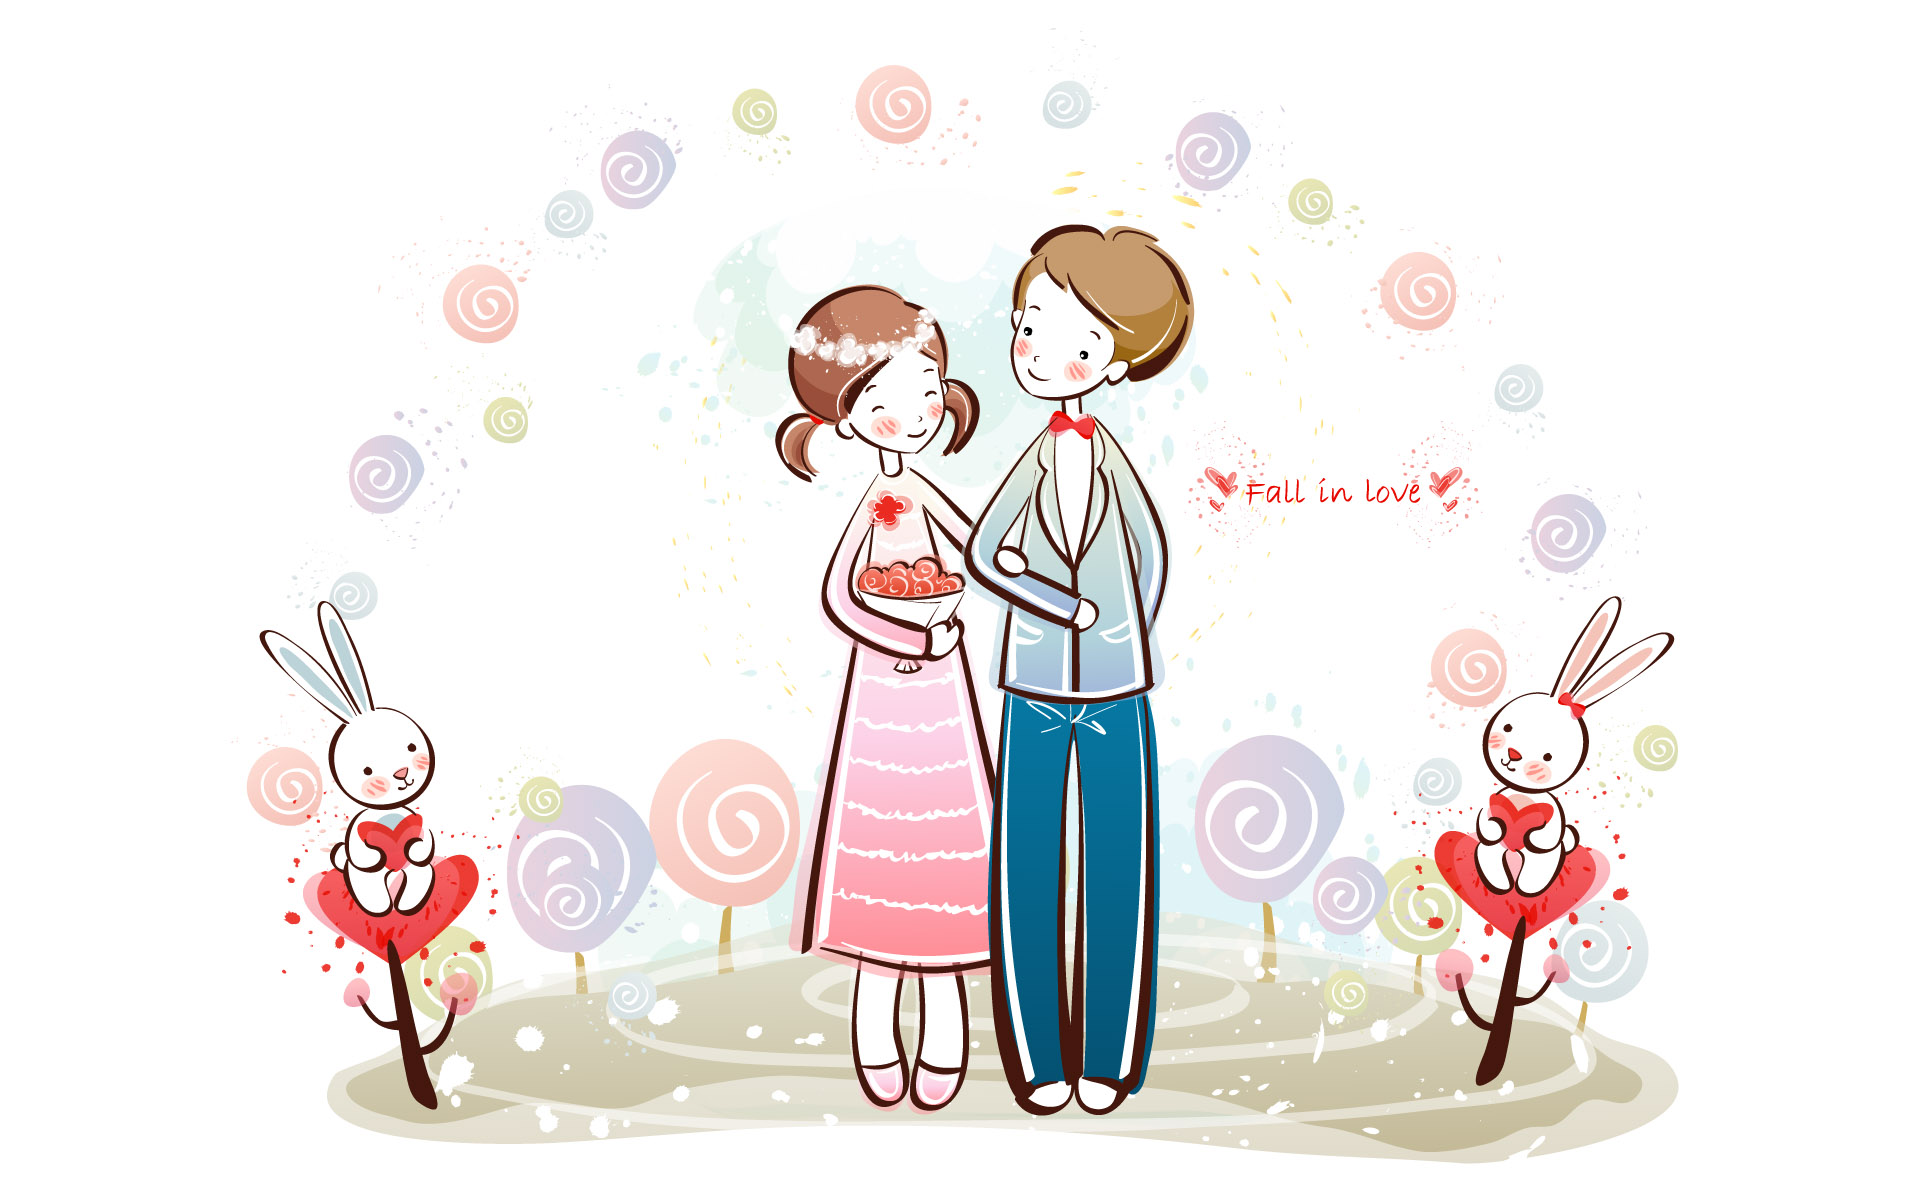 Love couple Wallpaper Hd cartoon : Diantara Kita Bercinta